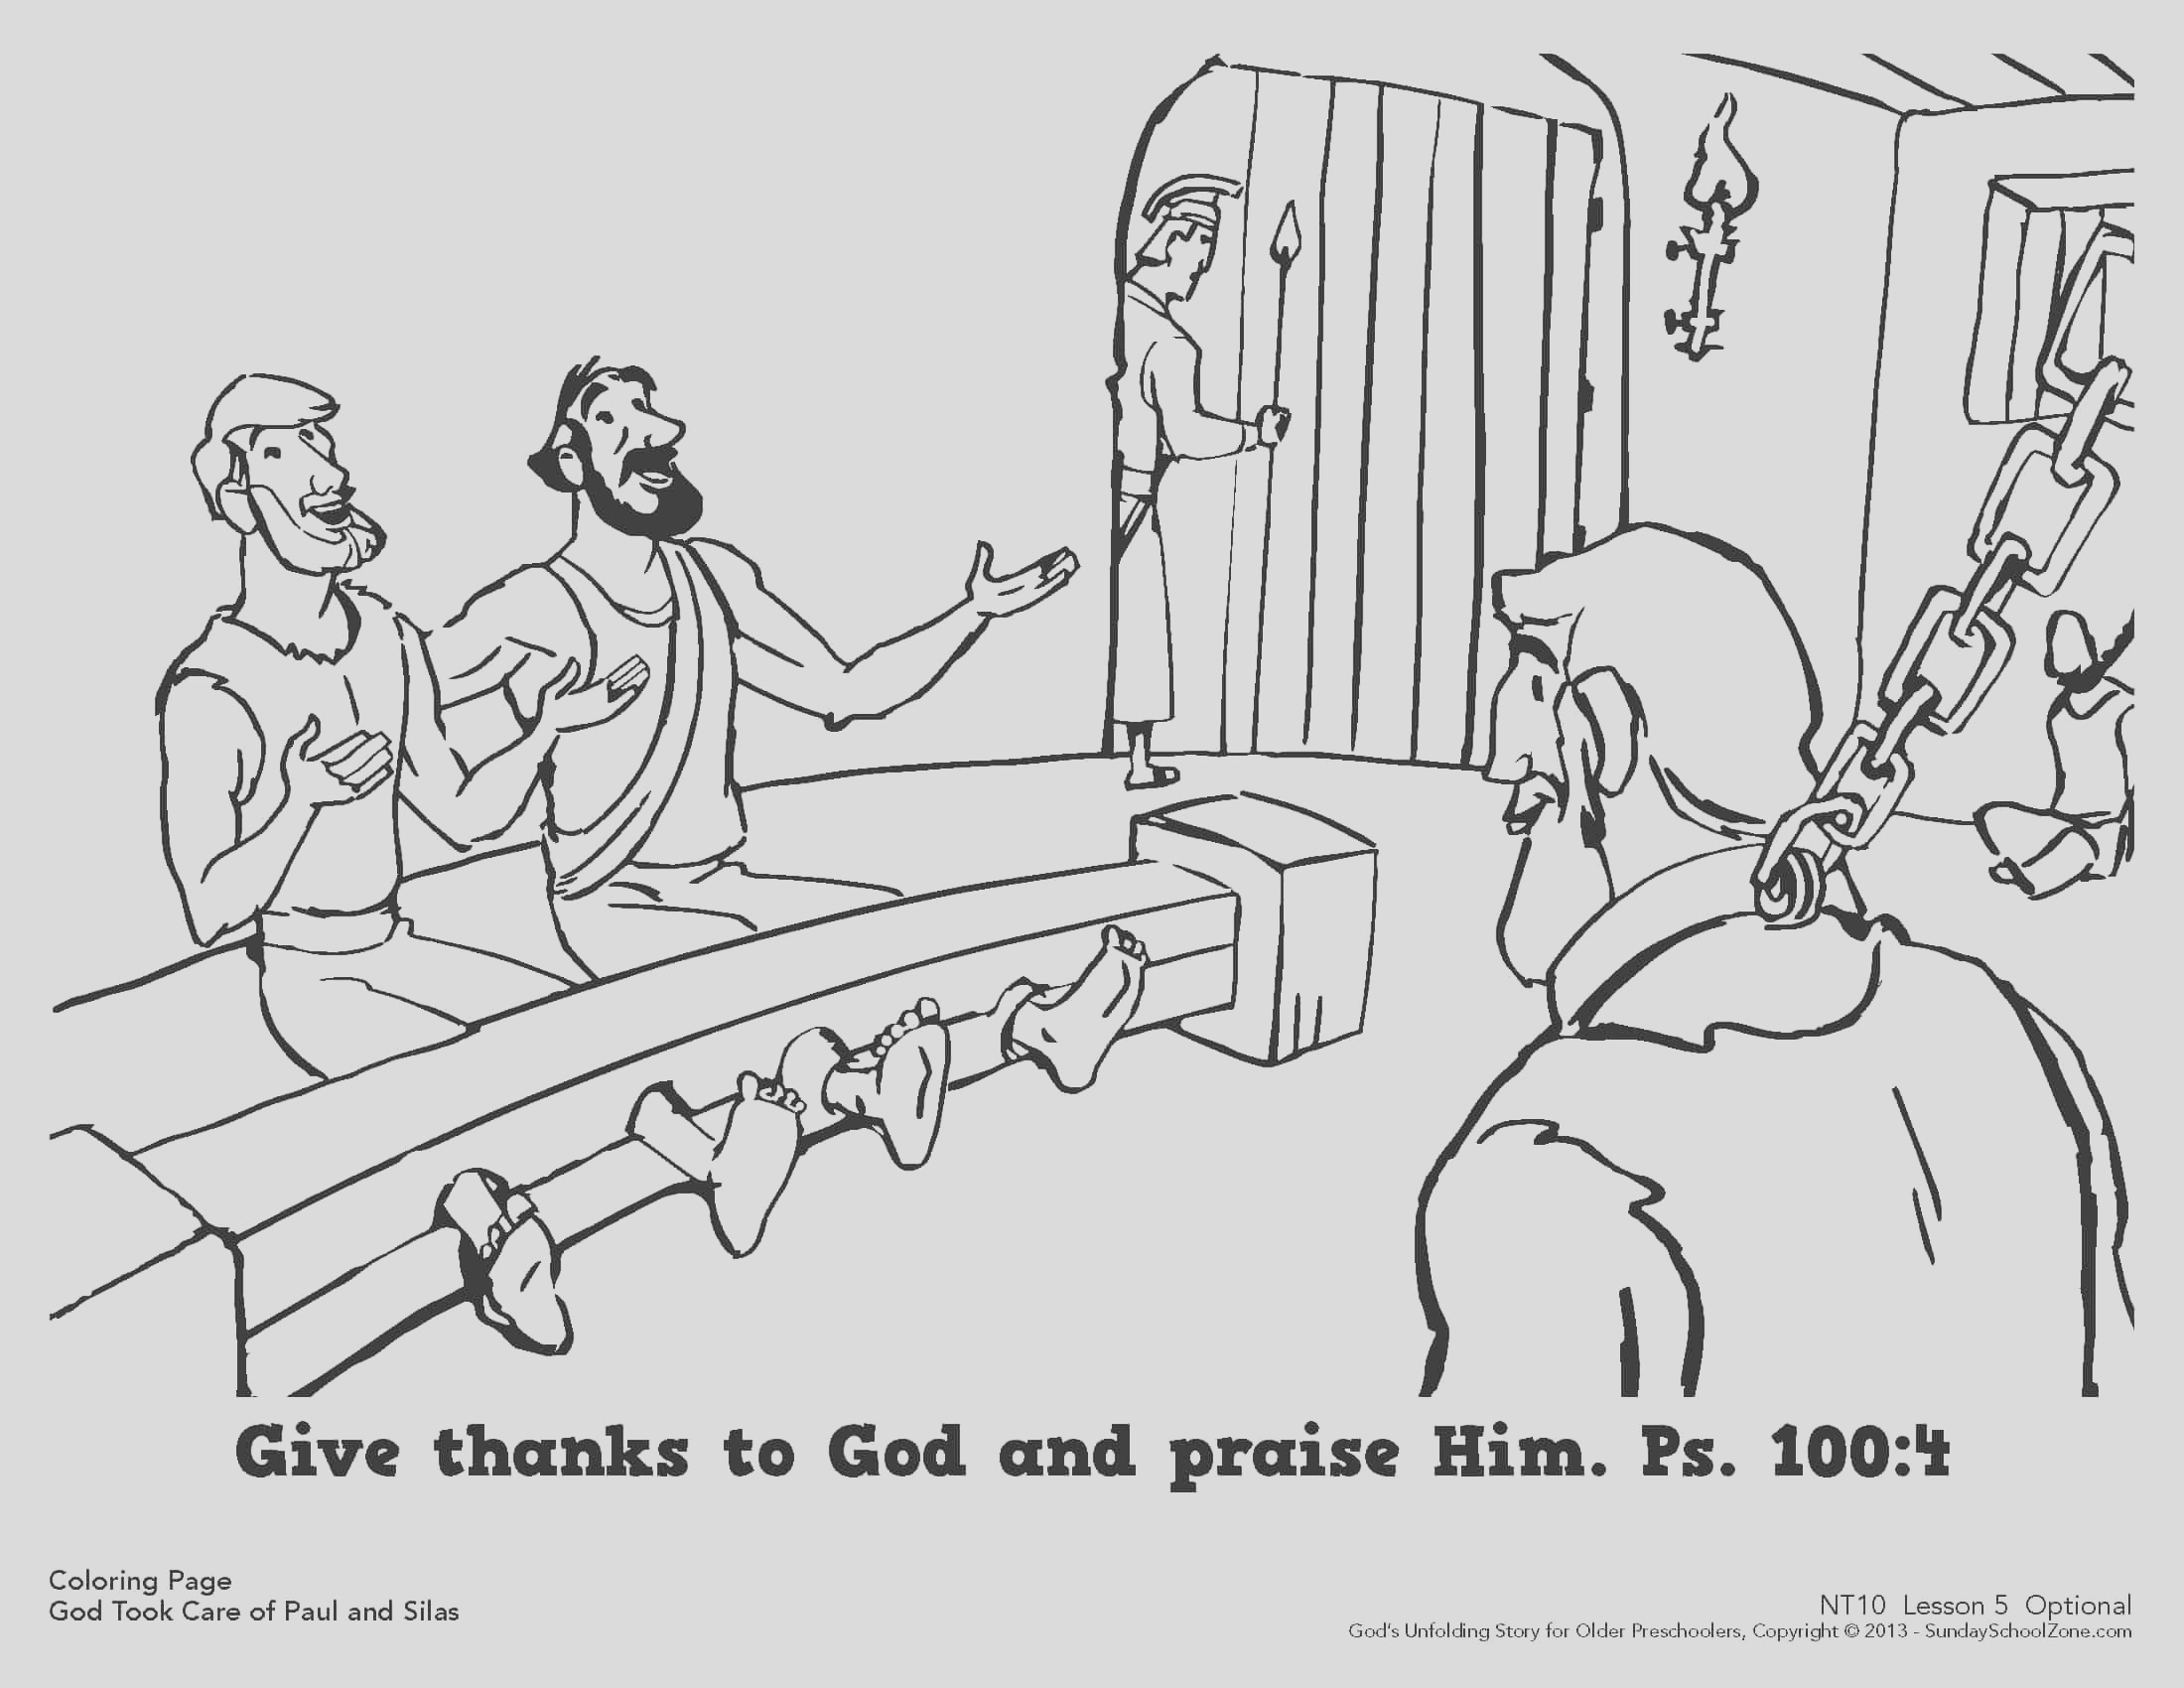 paul and silas were rescued from jail coloring page